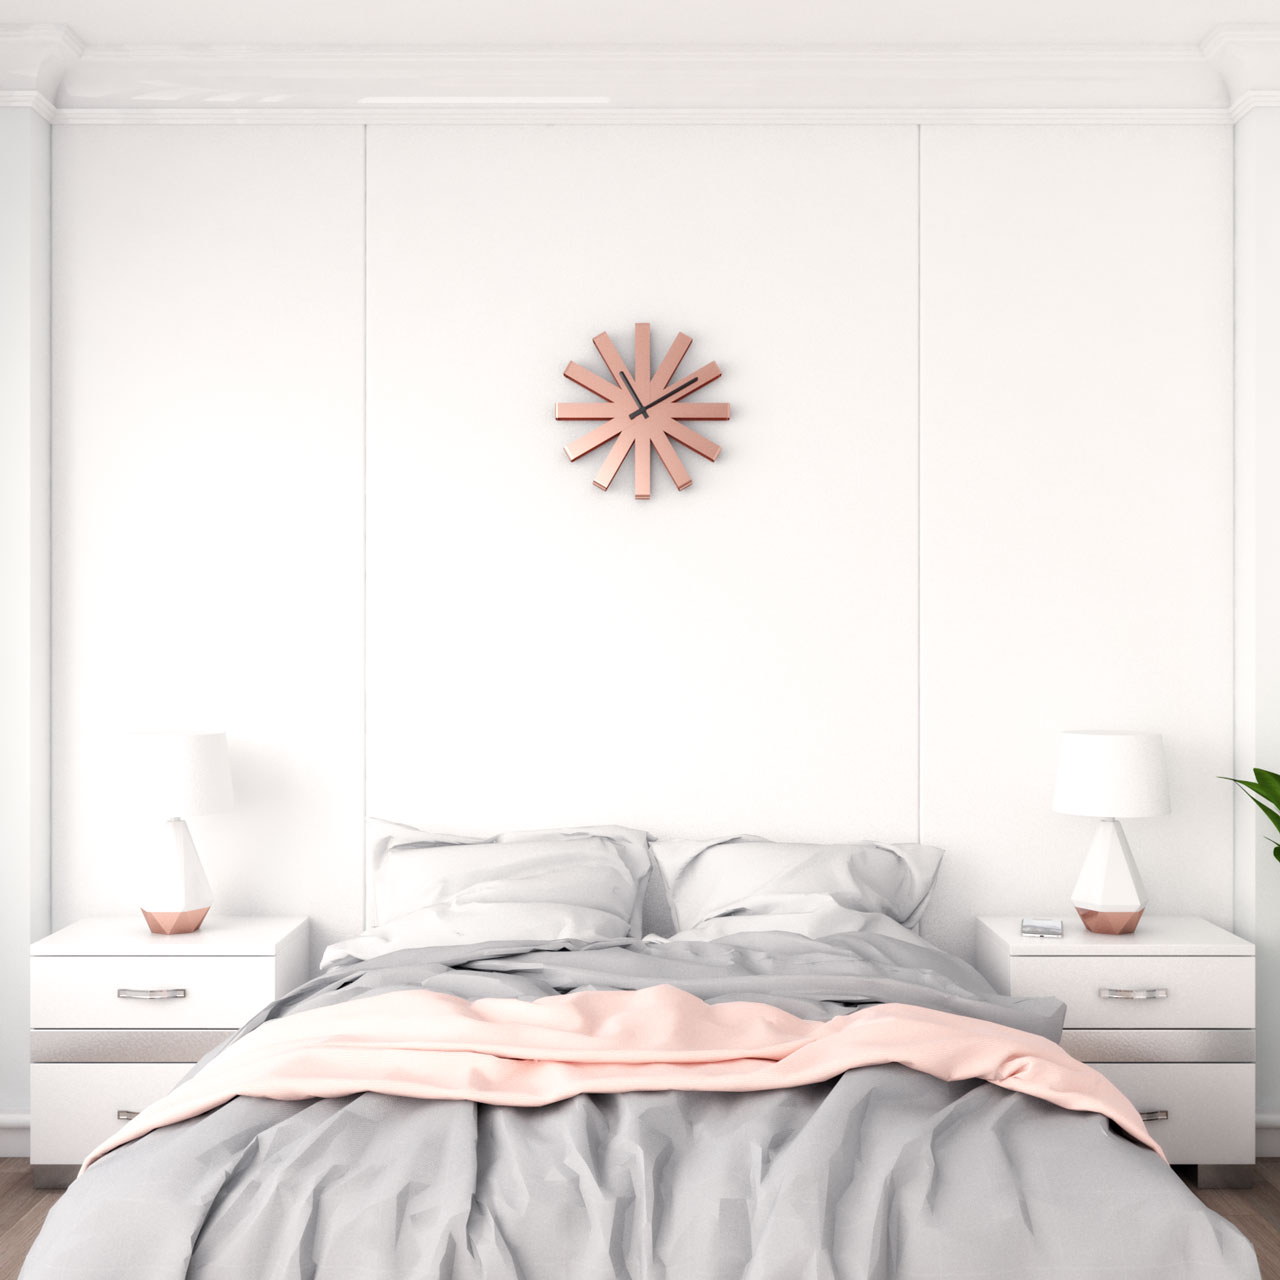 Rose gold wall clock to decorate bedroom wall